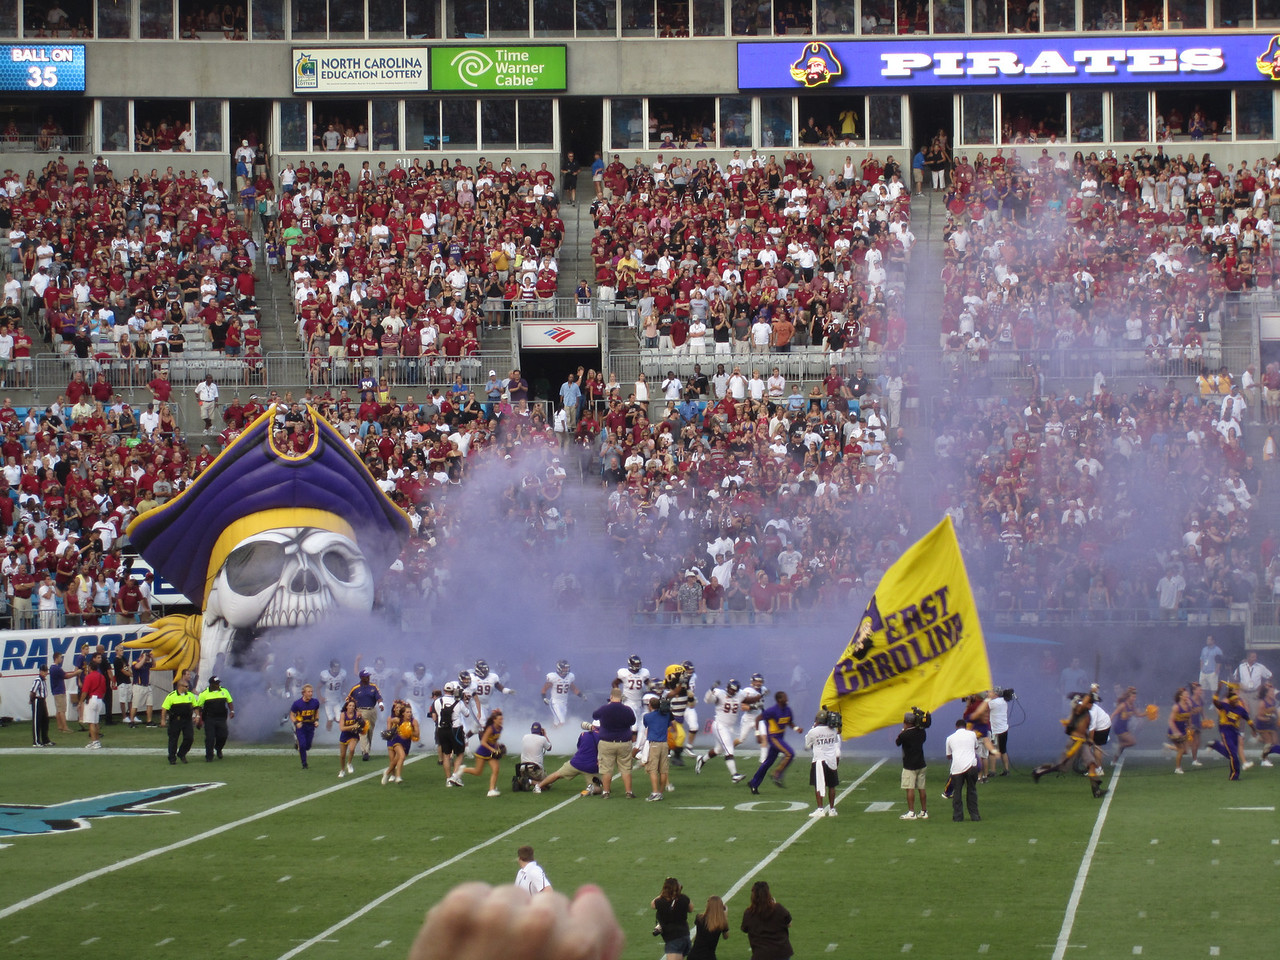 9/3/2011 ECU vs South Carolina